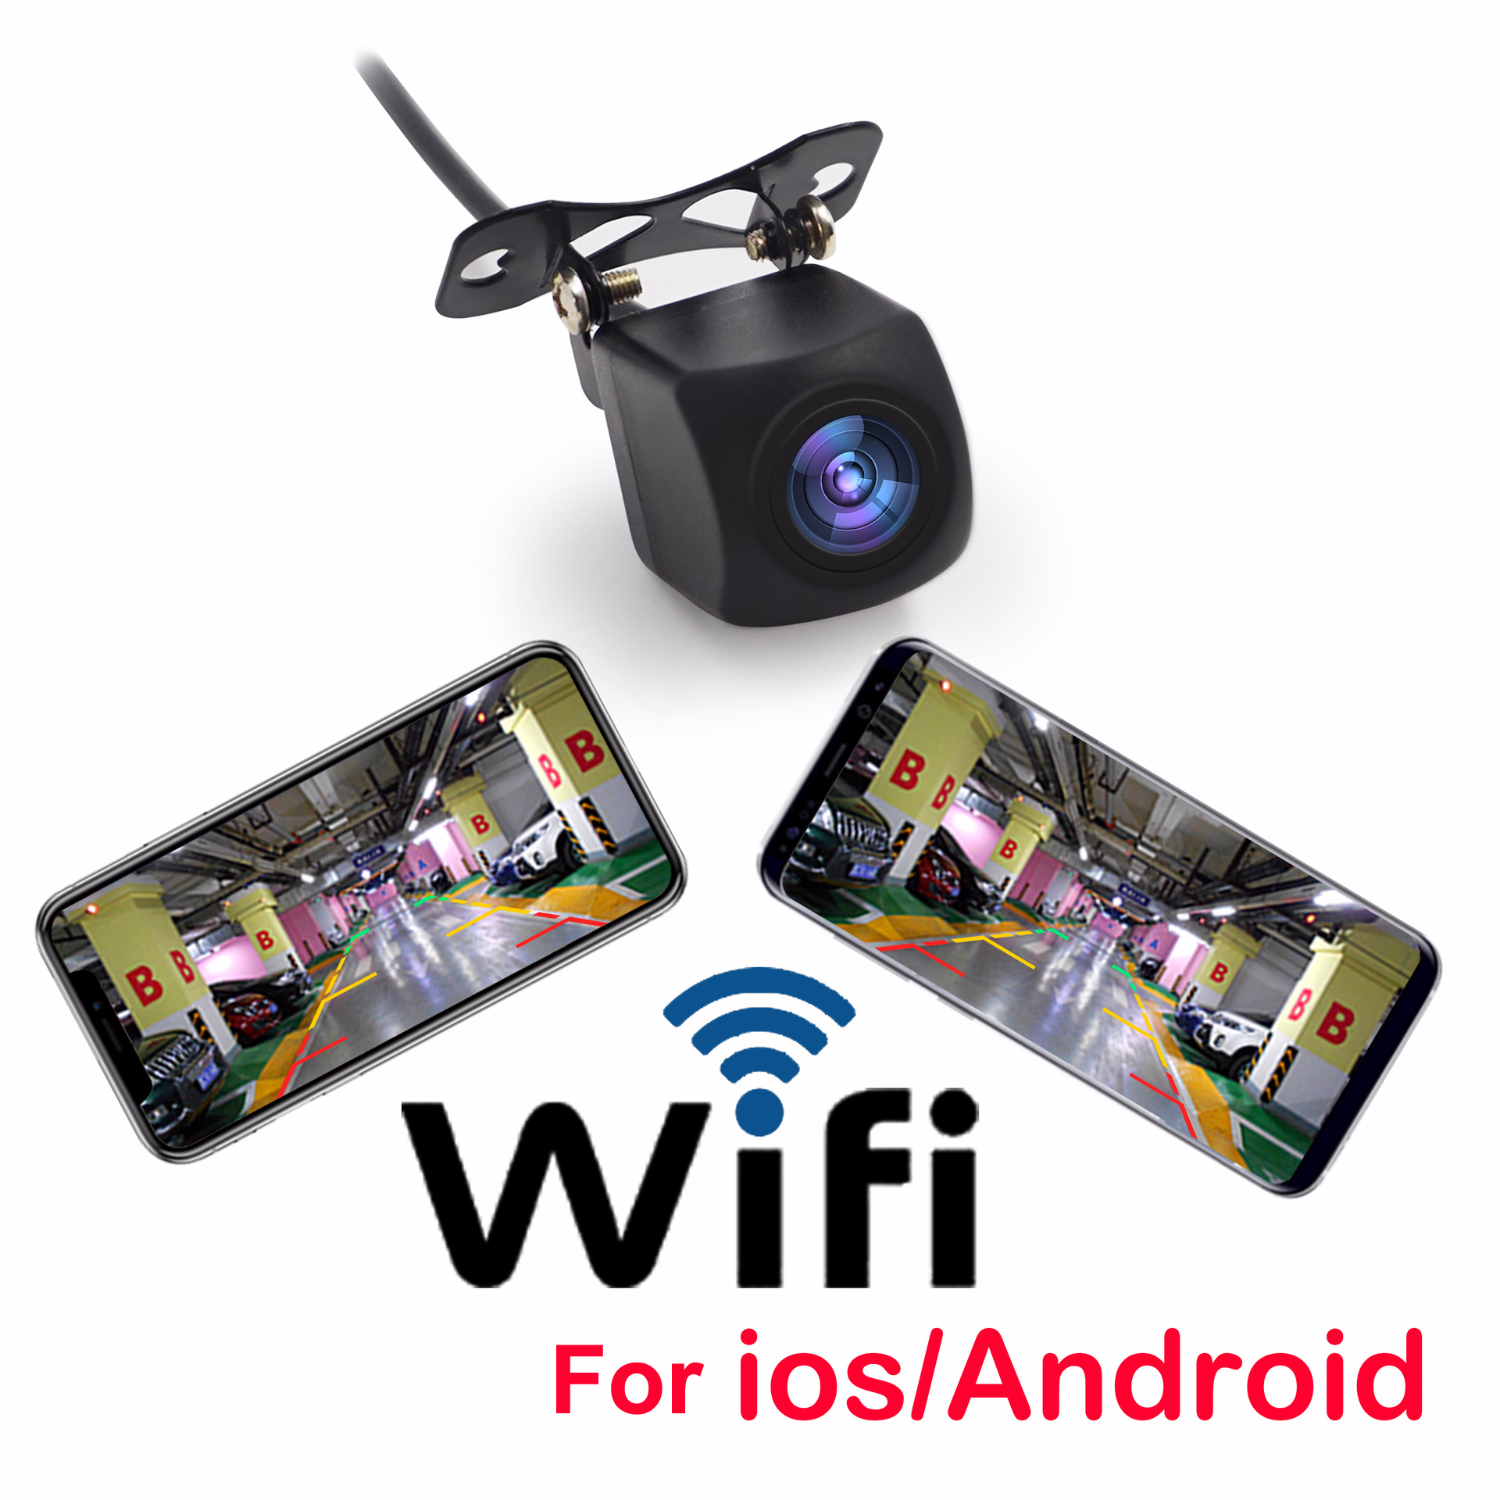 OHANEE Wireless Car Rear View Camera WIFI Auto Reversing Camera Vehicle Dash Cam Star Night Vision For IPhone And Android Phone